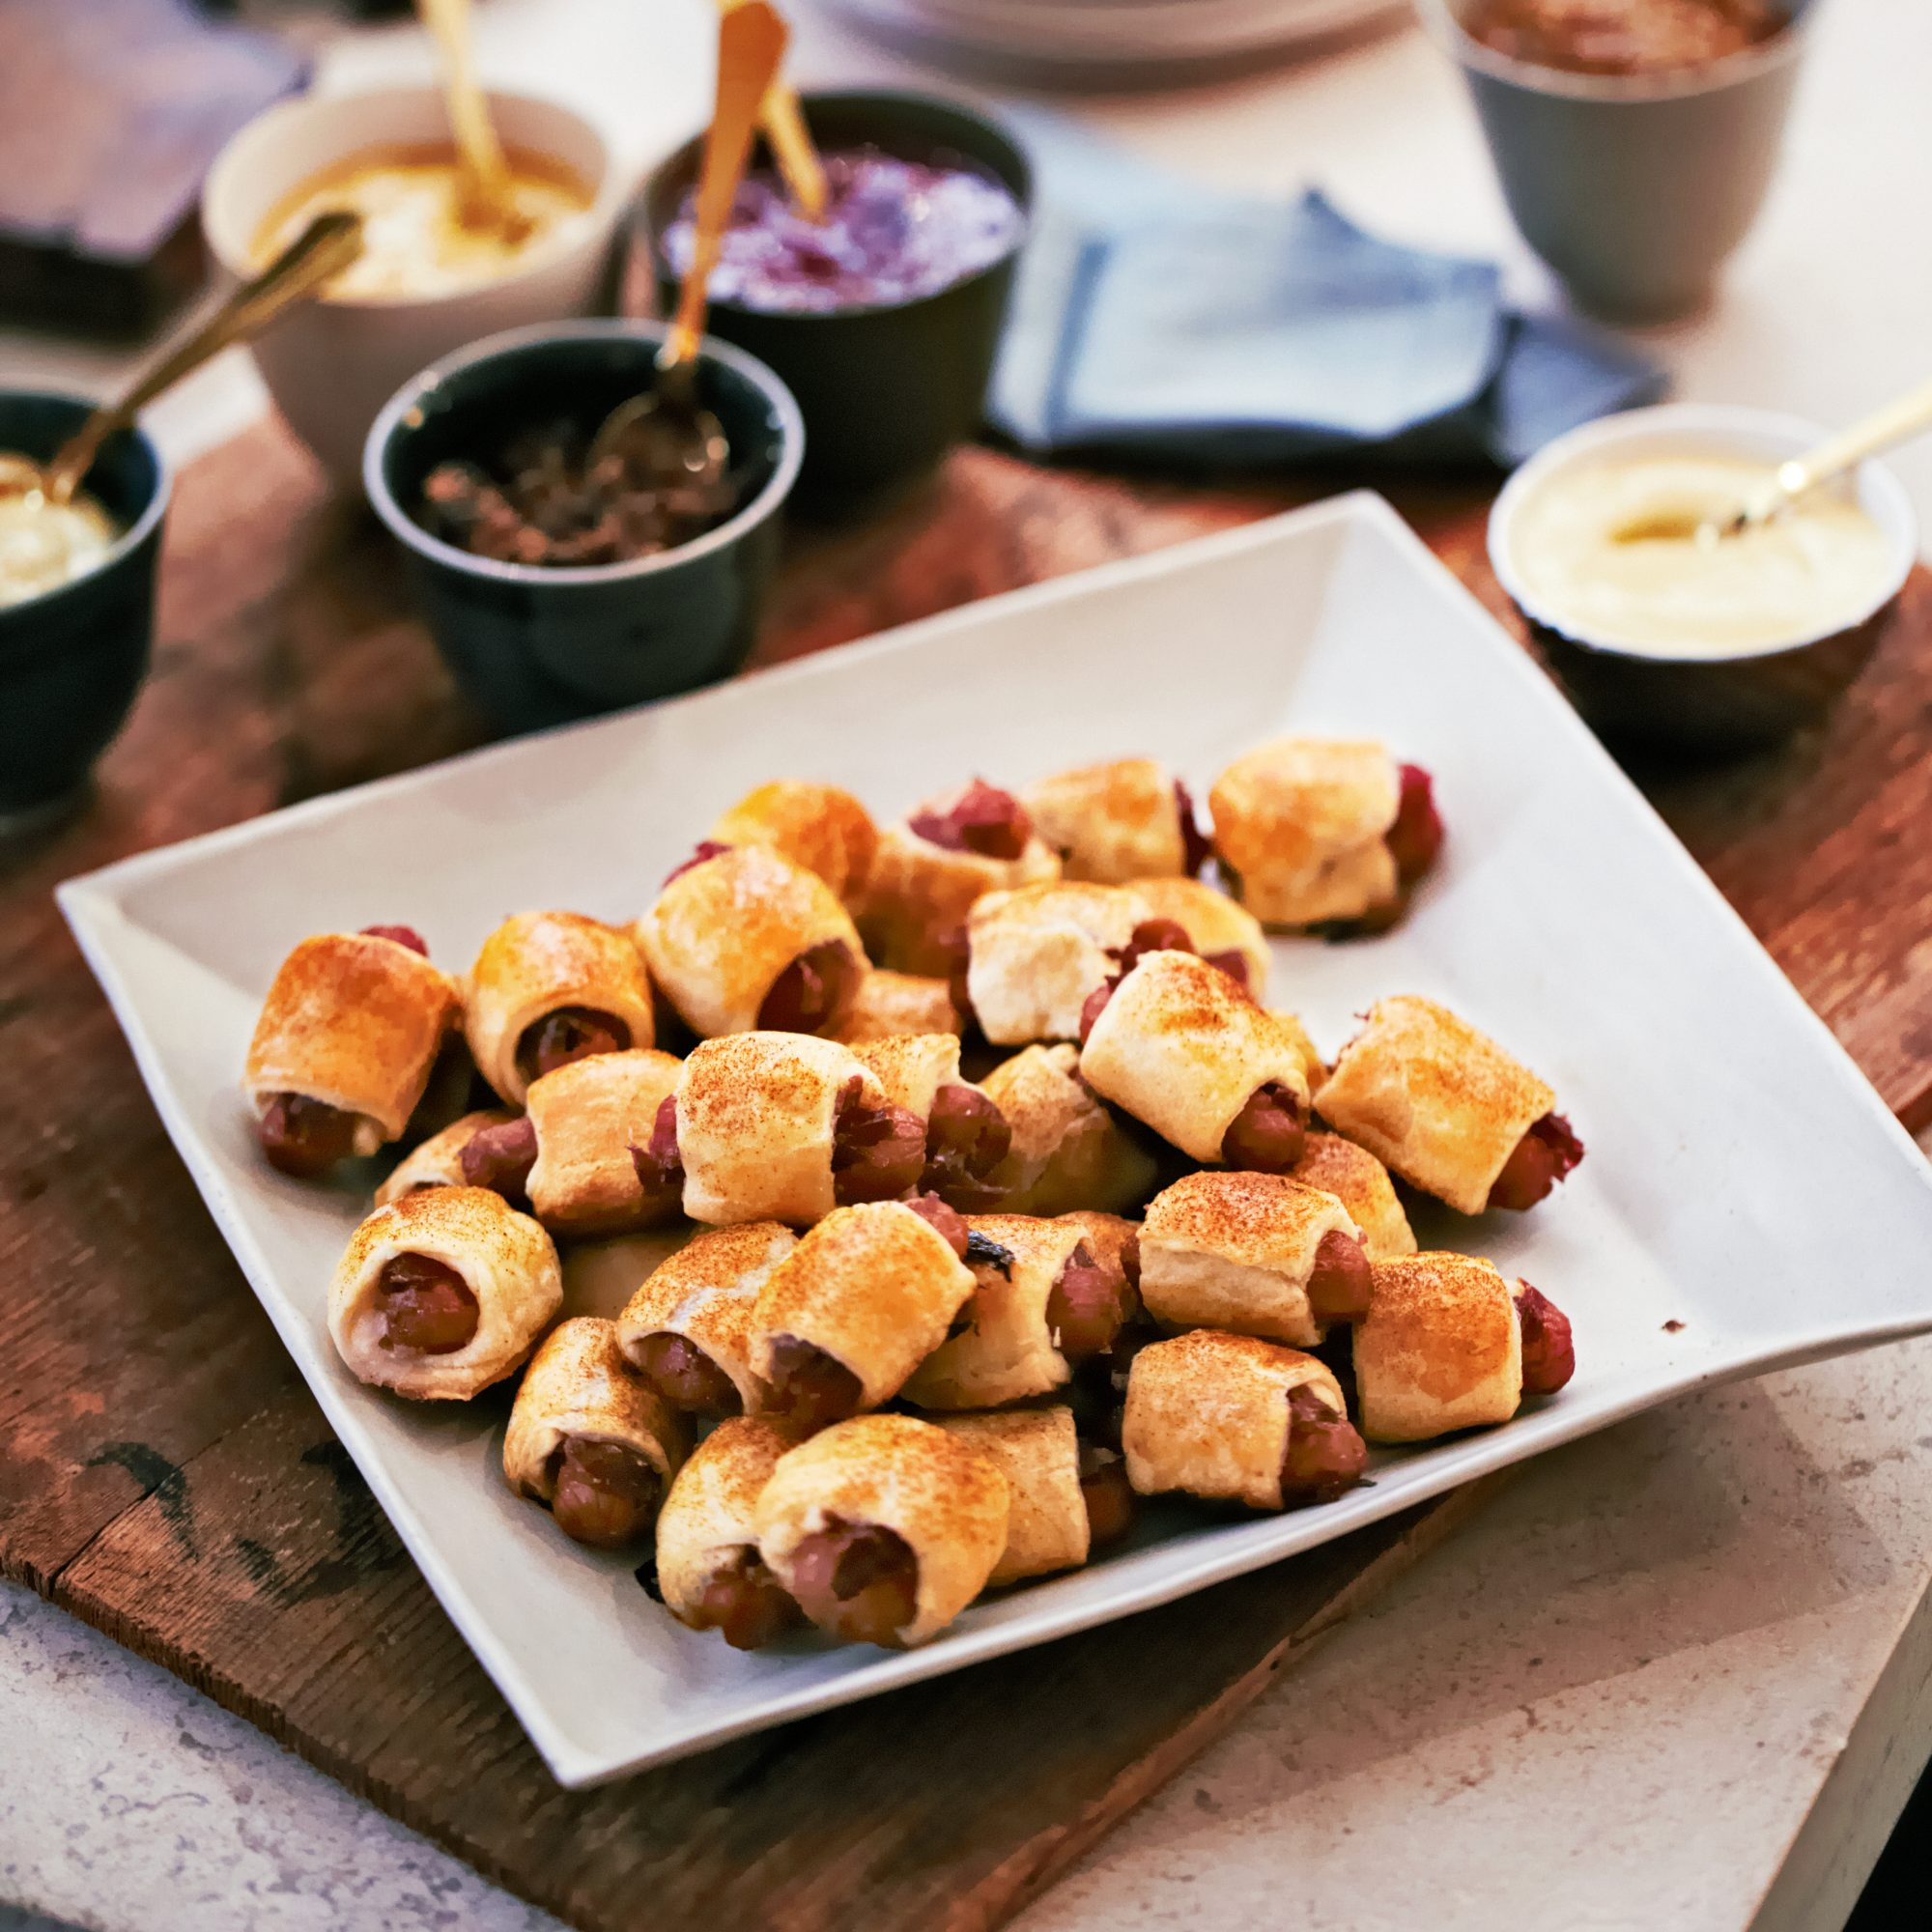 Stuffed Pigs in Blankets with Flavored Mustards